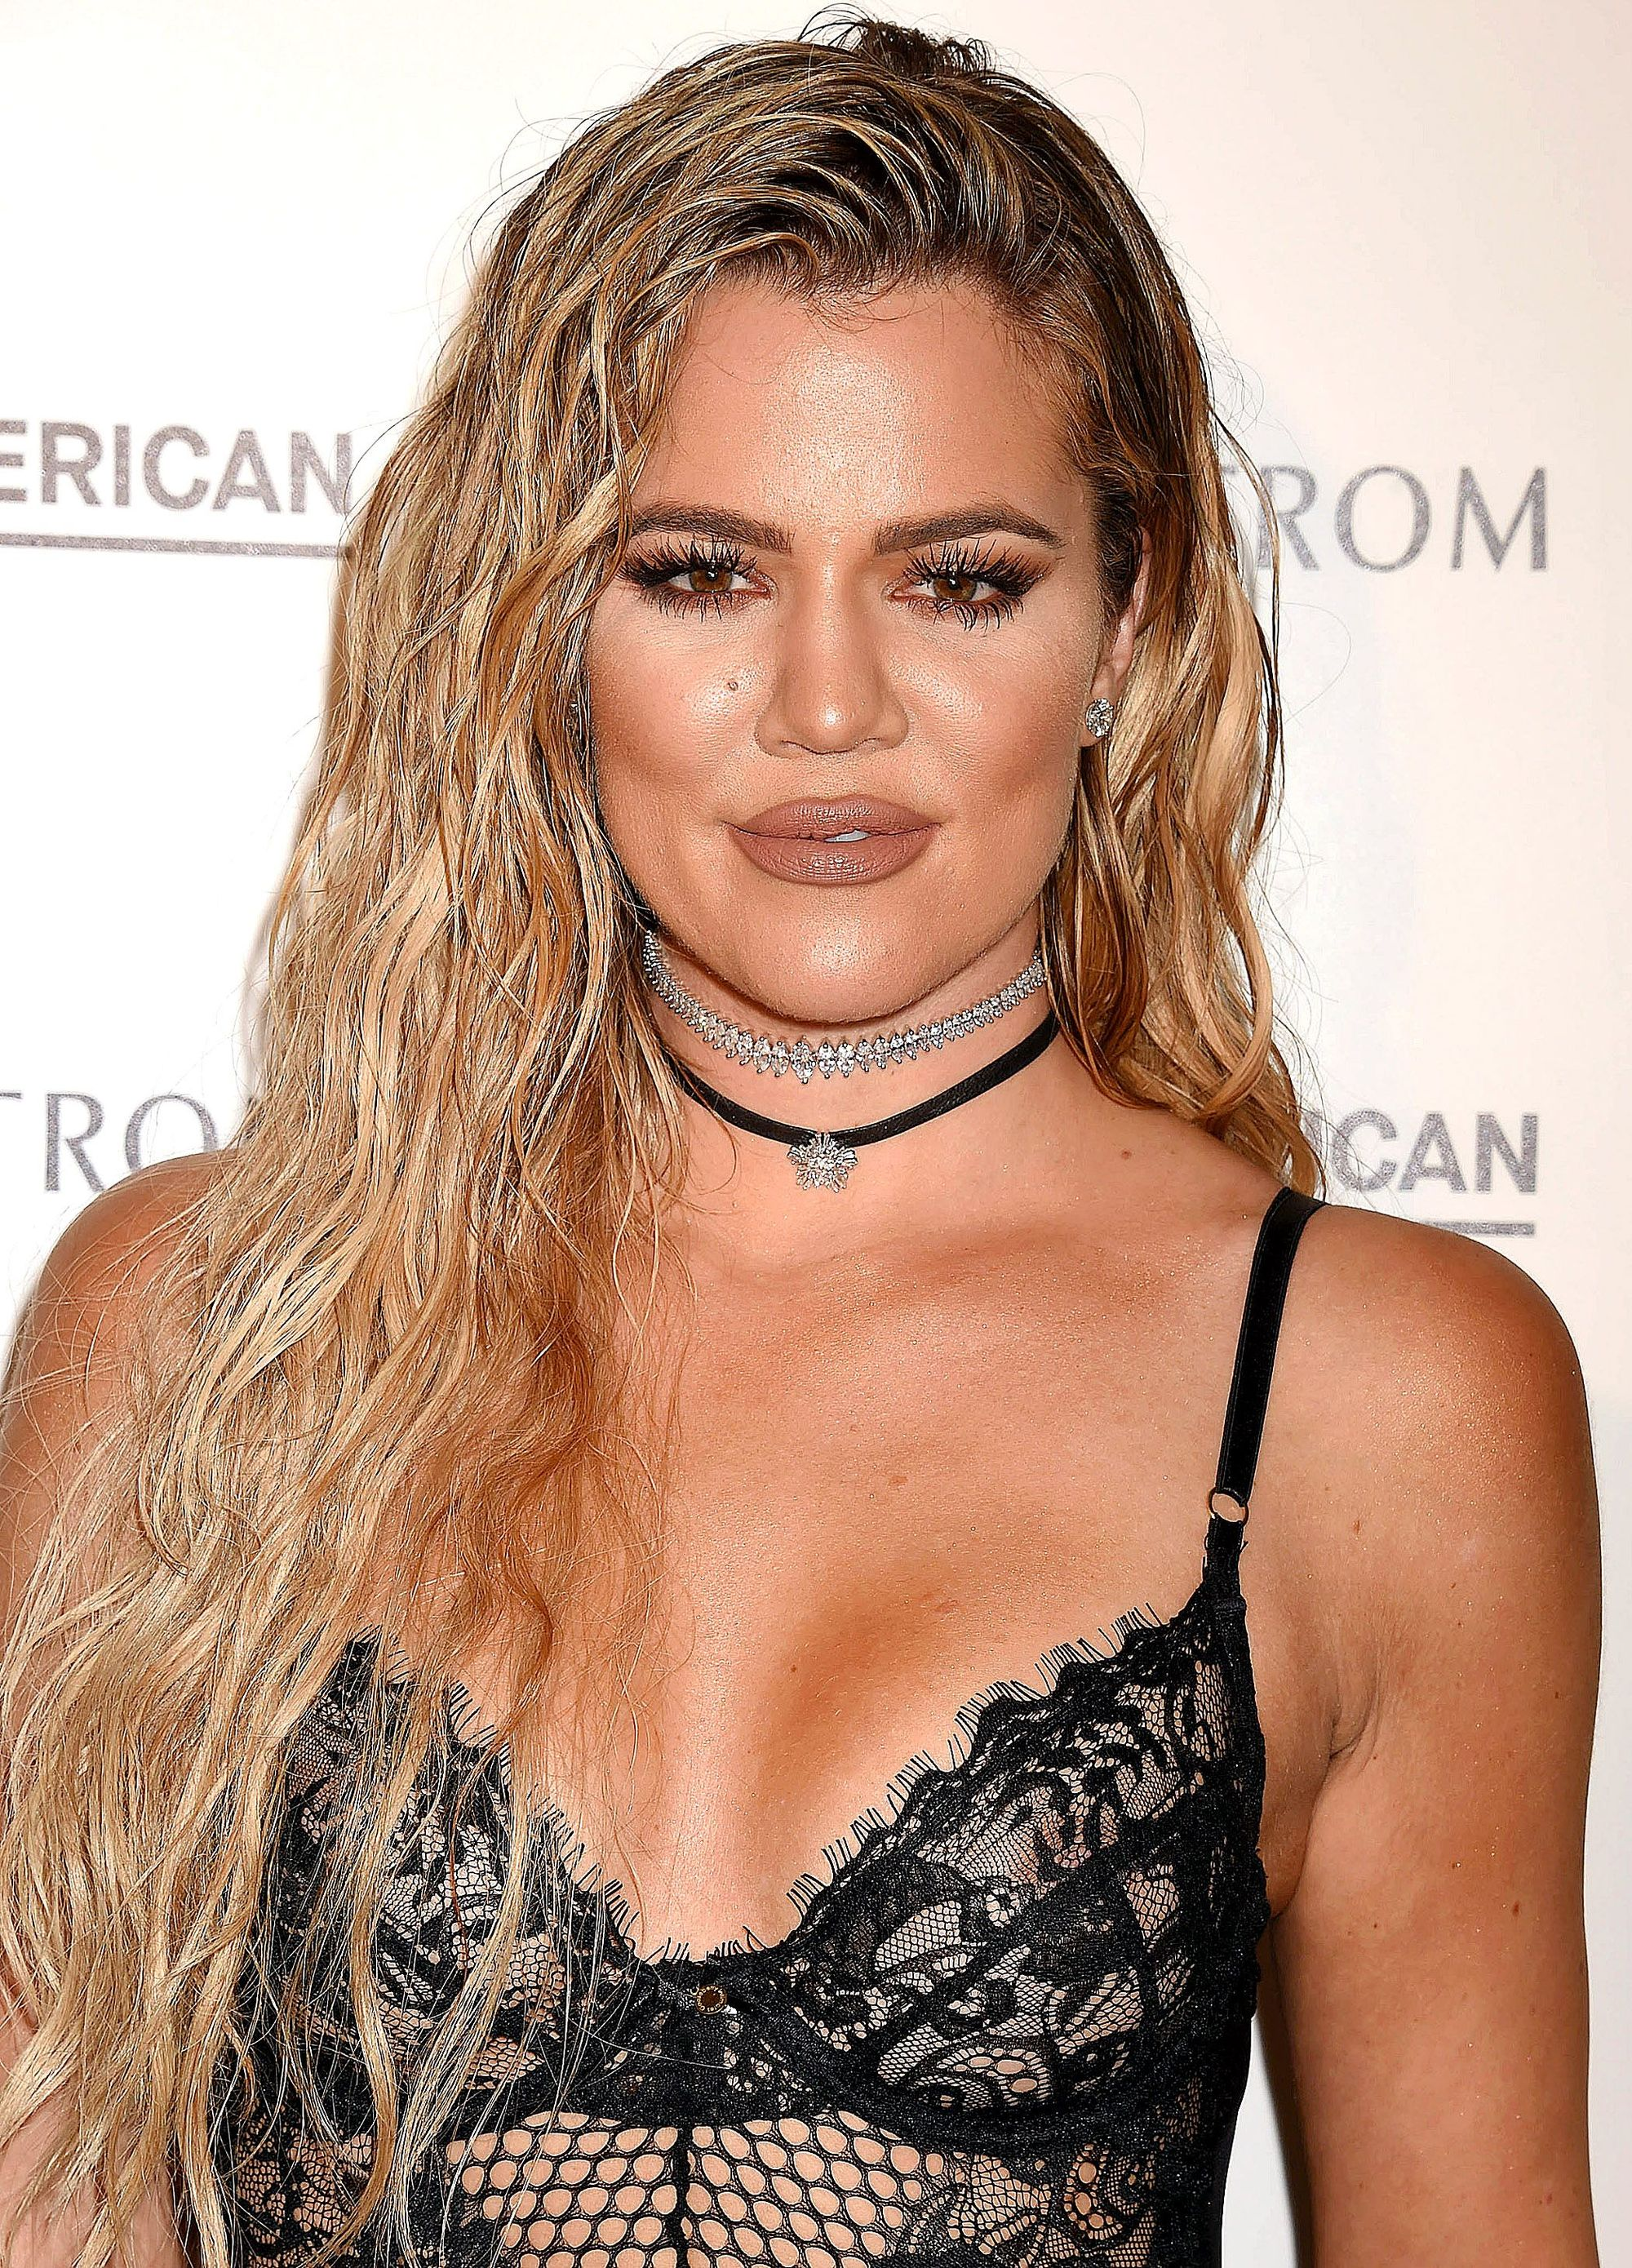 Dirty blonde hair - Khloe Kardashian with long wavy hair swept to the side